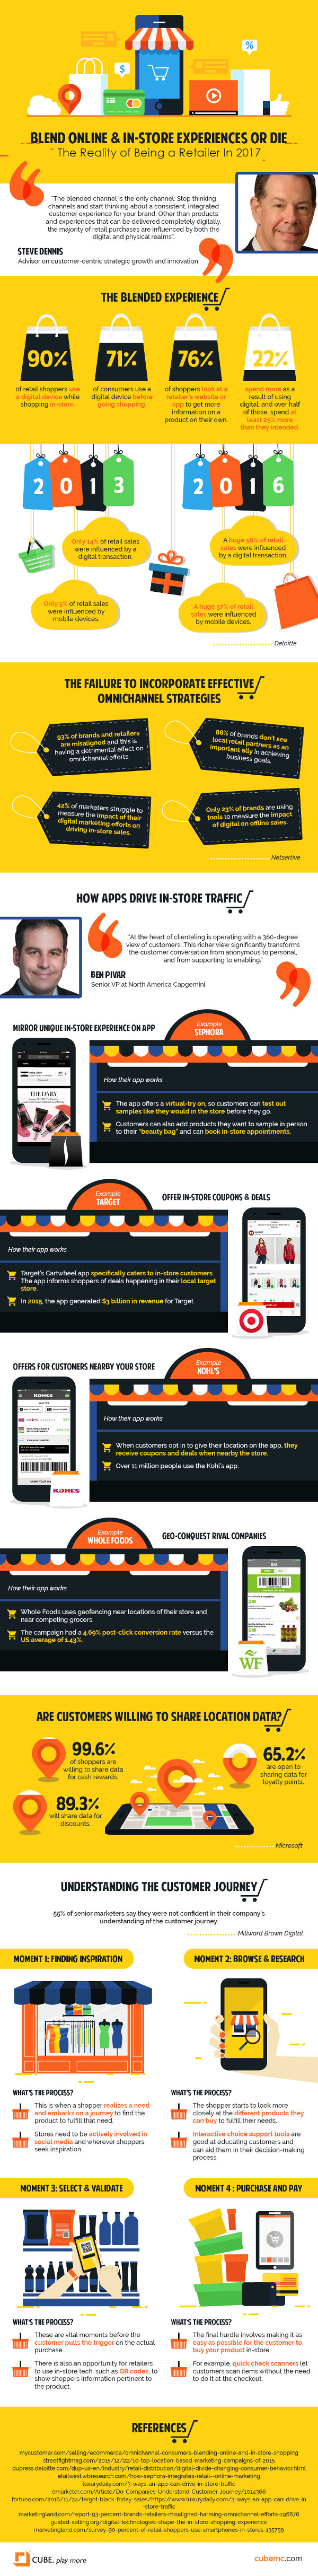 Retail Strategy Today: A Blended Online and In-Store Shopping Journey